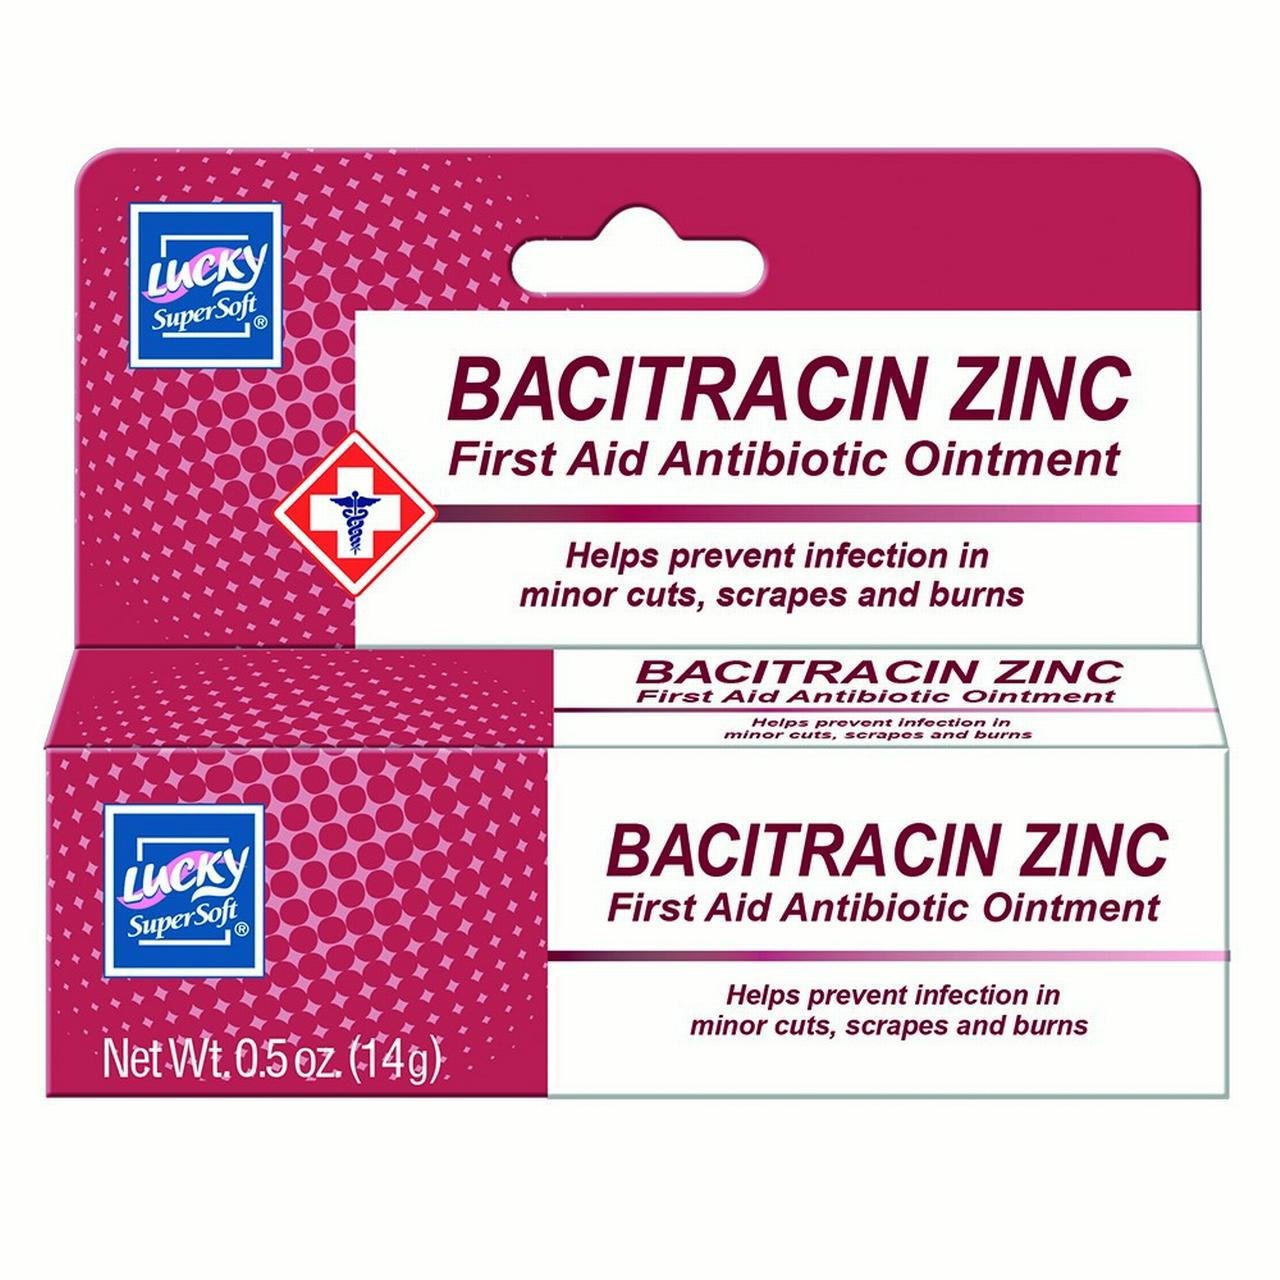 Lucky Super Soft Ointments, First Aid Antibiotic Ointment with Bacitracin, 0.5 Oz